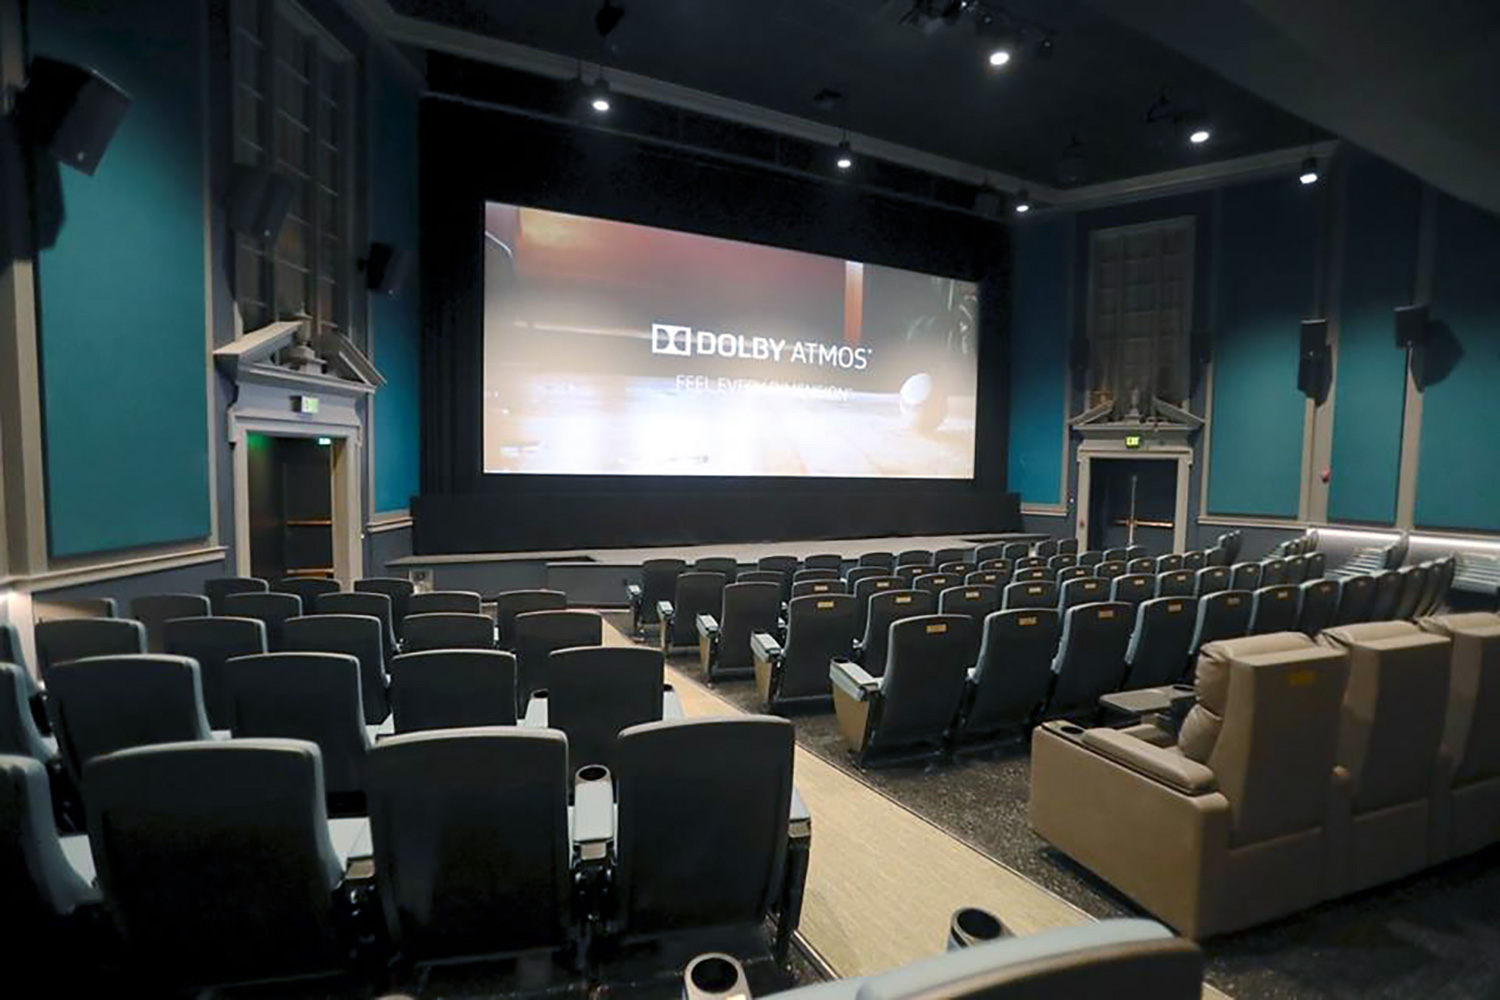 The Bedford Playhouse/Clive Davis Arts Center is a classic movie theater in the final stages of a total renovation. WSDG is providing complete acoustic and A/V design and consultation for the complex. Main Dolby Atmos Theater Screen View